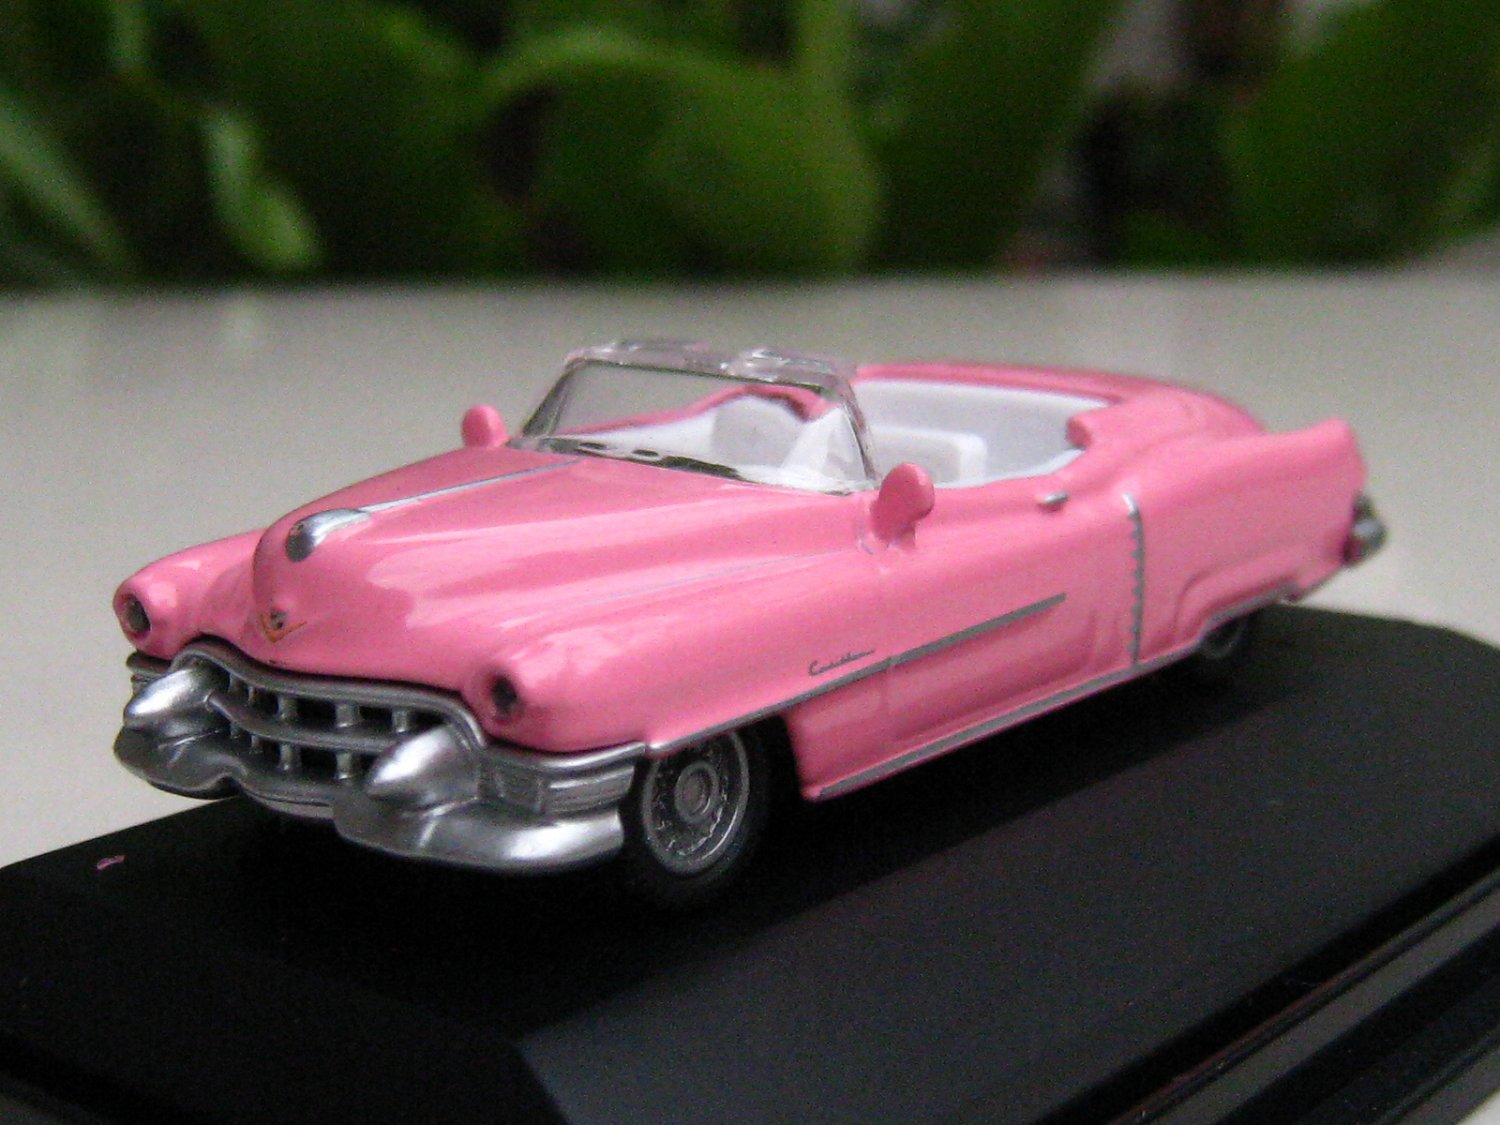 High Speed 1/87 Diecast Car Model Classic Cadillac Eldorado 1953 ( PINK ) 5.5cm